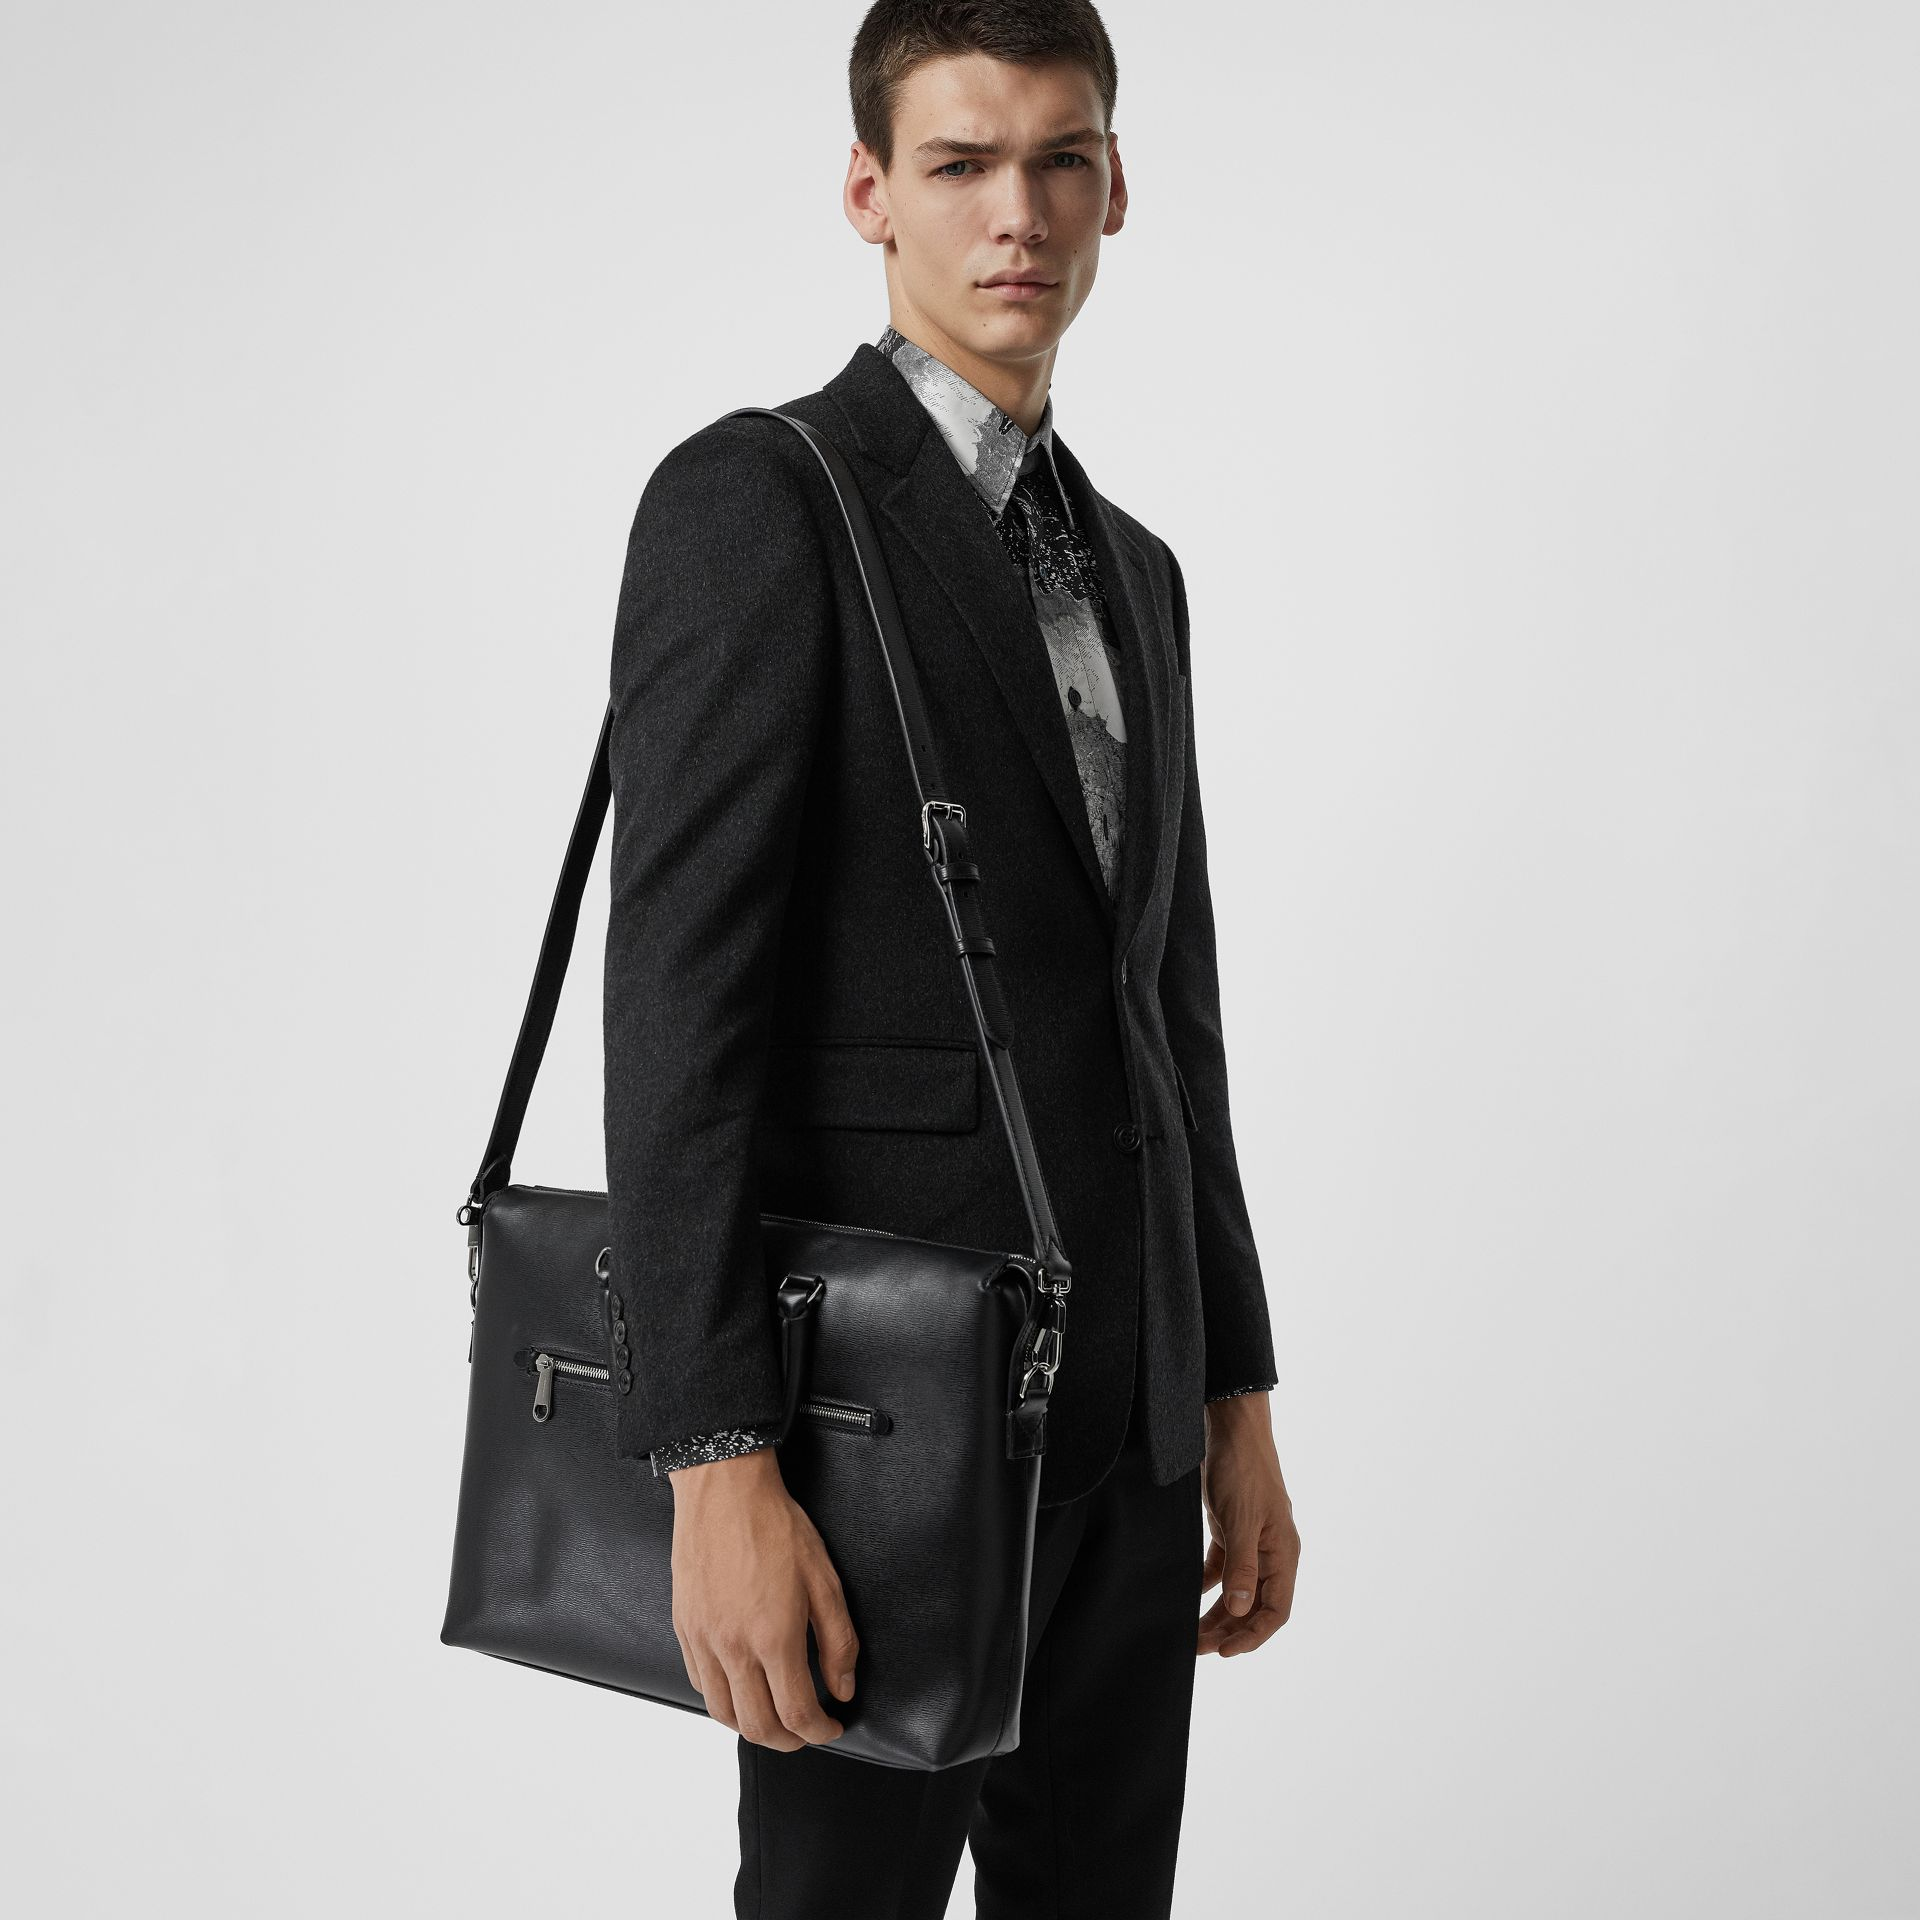 Large Textured Leather Briefcase in Black - Men | Burberry Singapore - gallery image 3